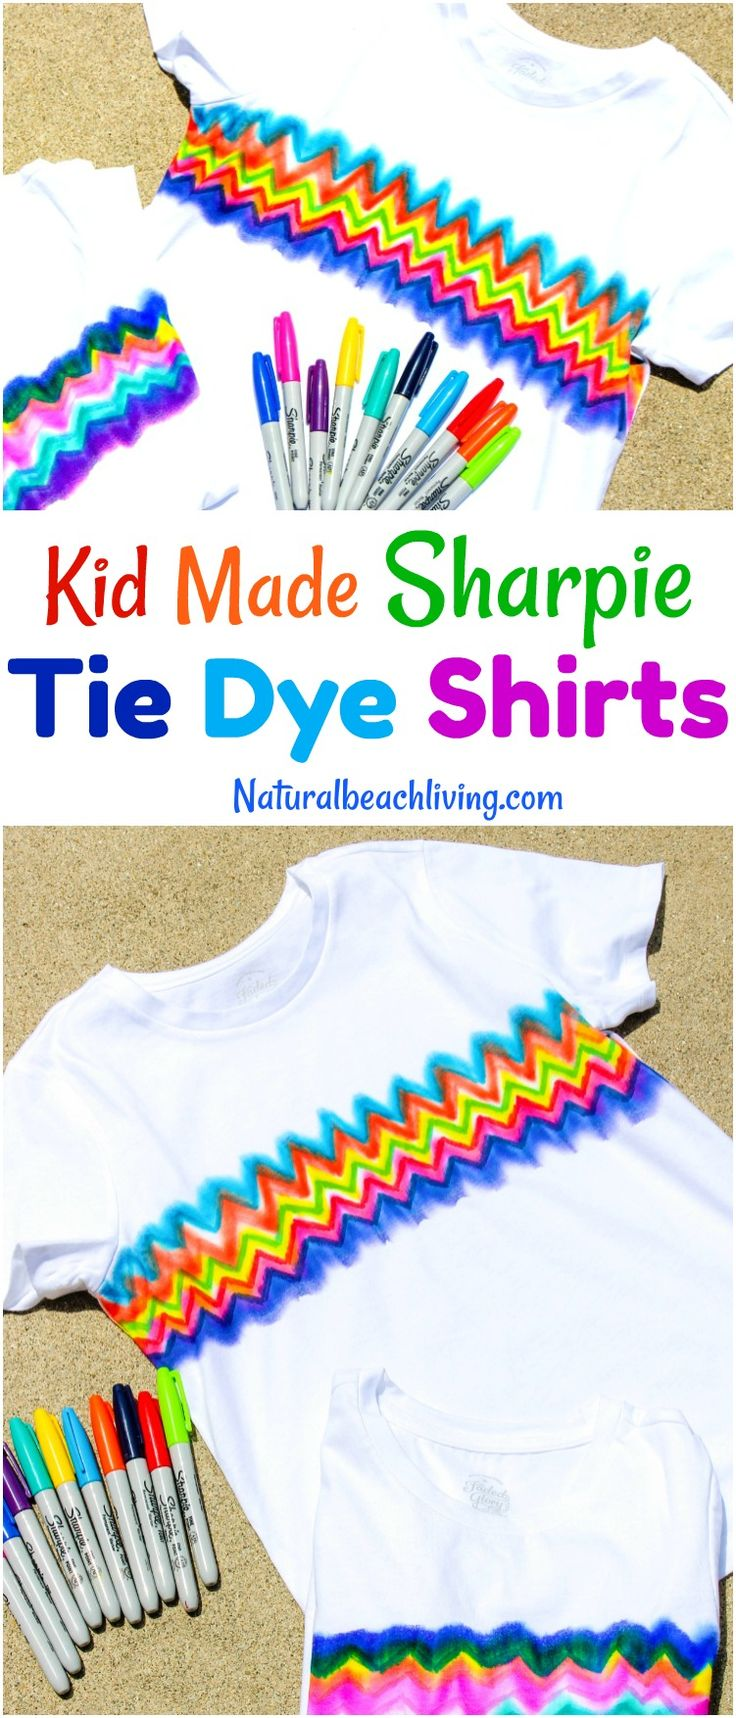 Craft ideas with sharpies - How To Make Super Cool Sharpie Tie Dye Shirts